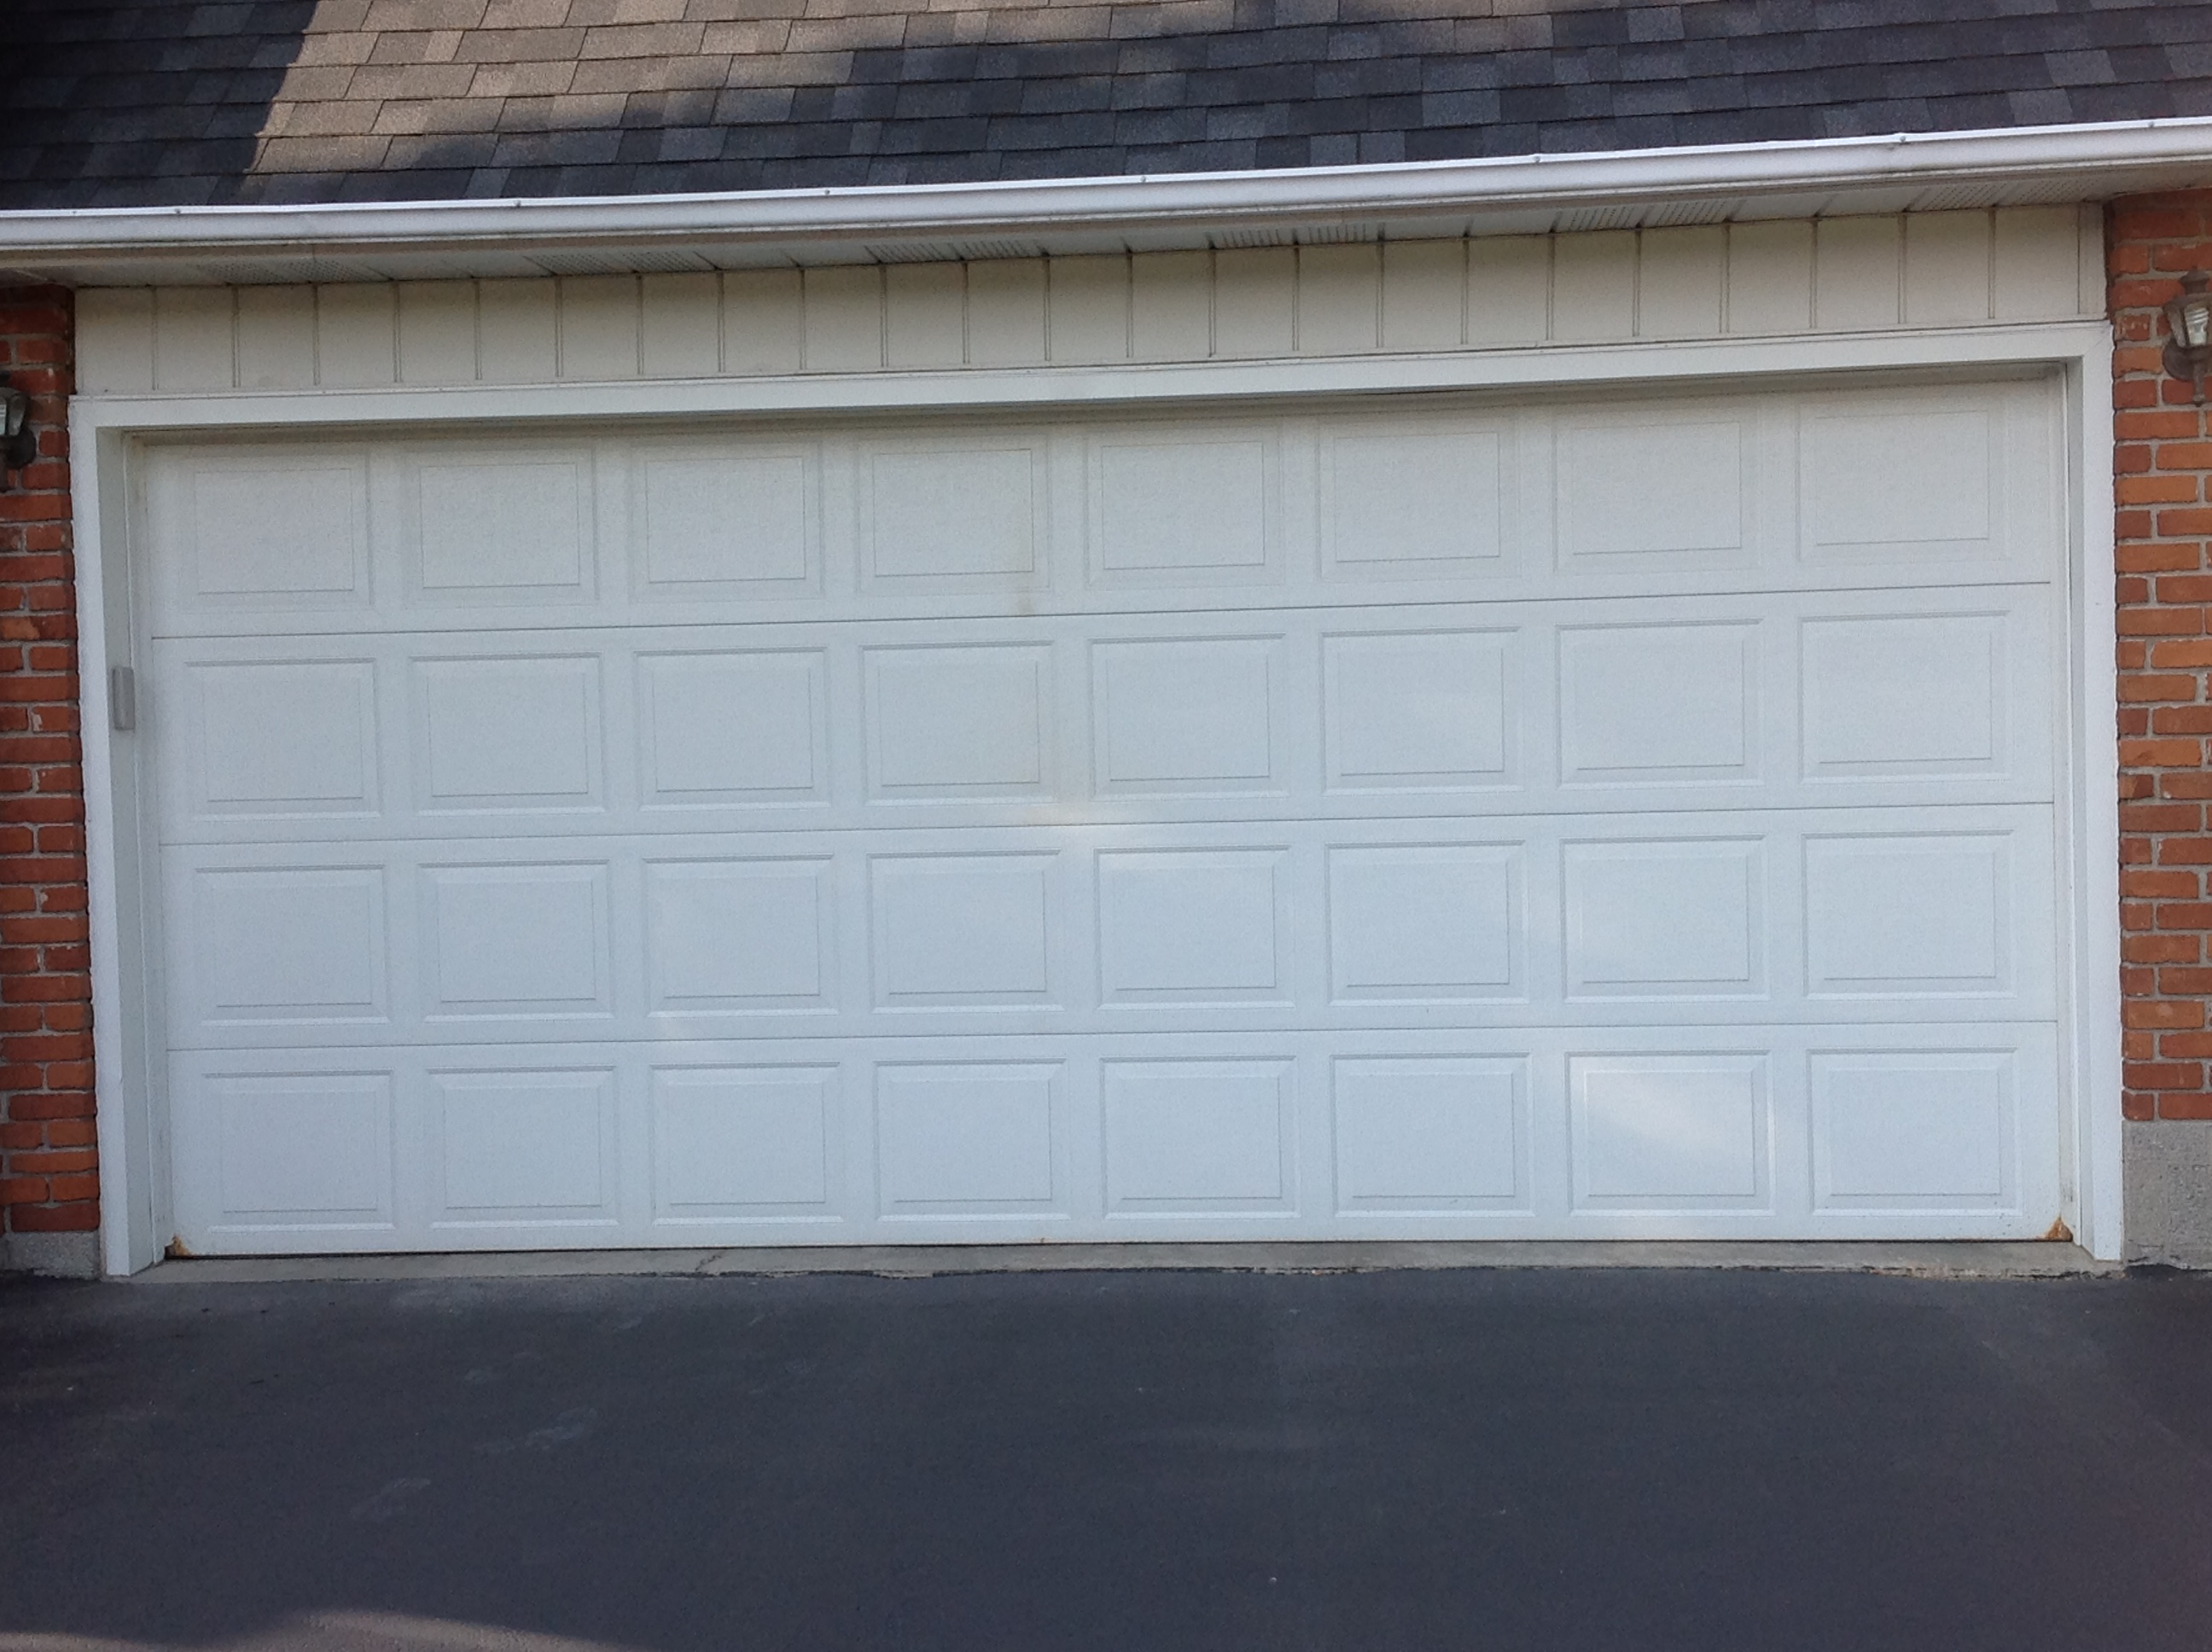 1936 #65463A Residential Garage Doors Hamilton Door Systems save image Garage Doors Systems 35872592